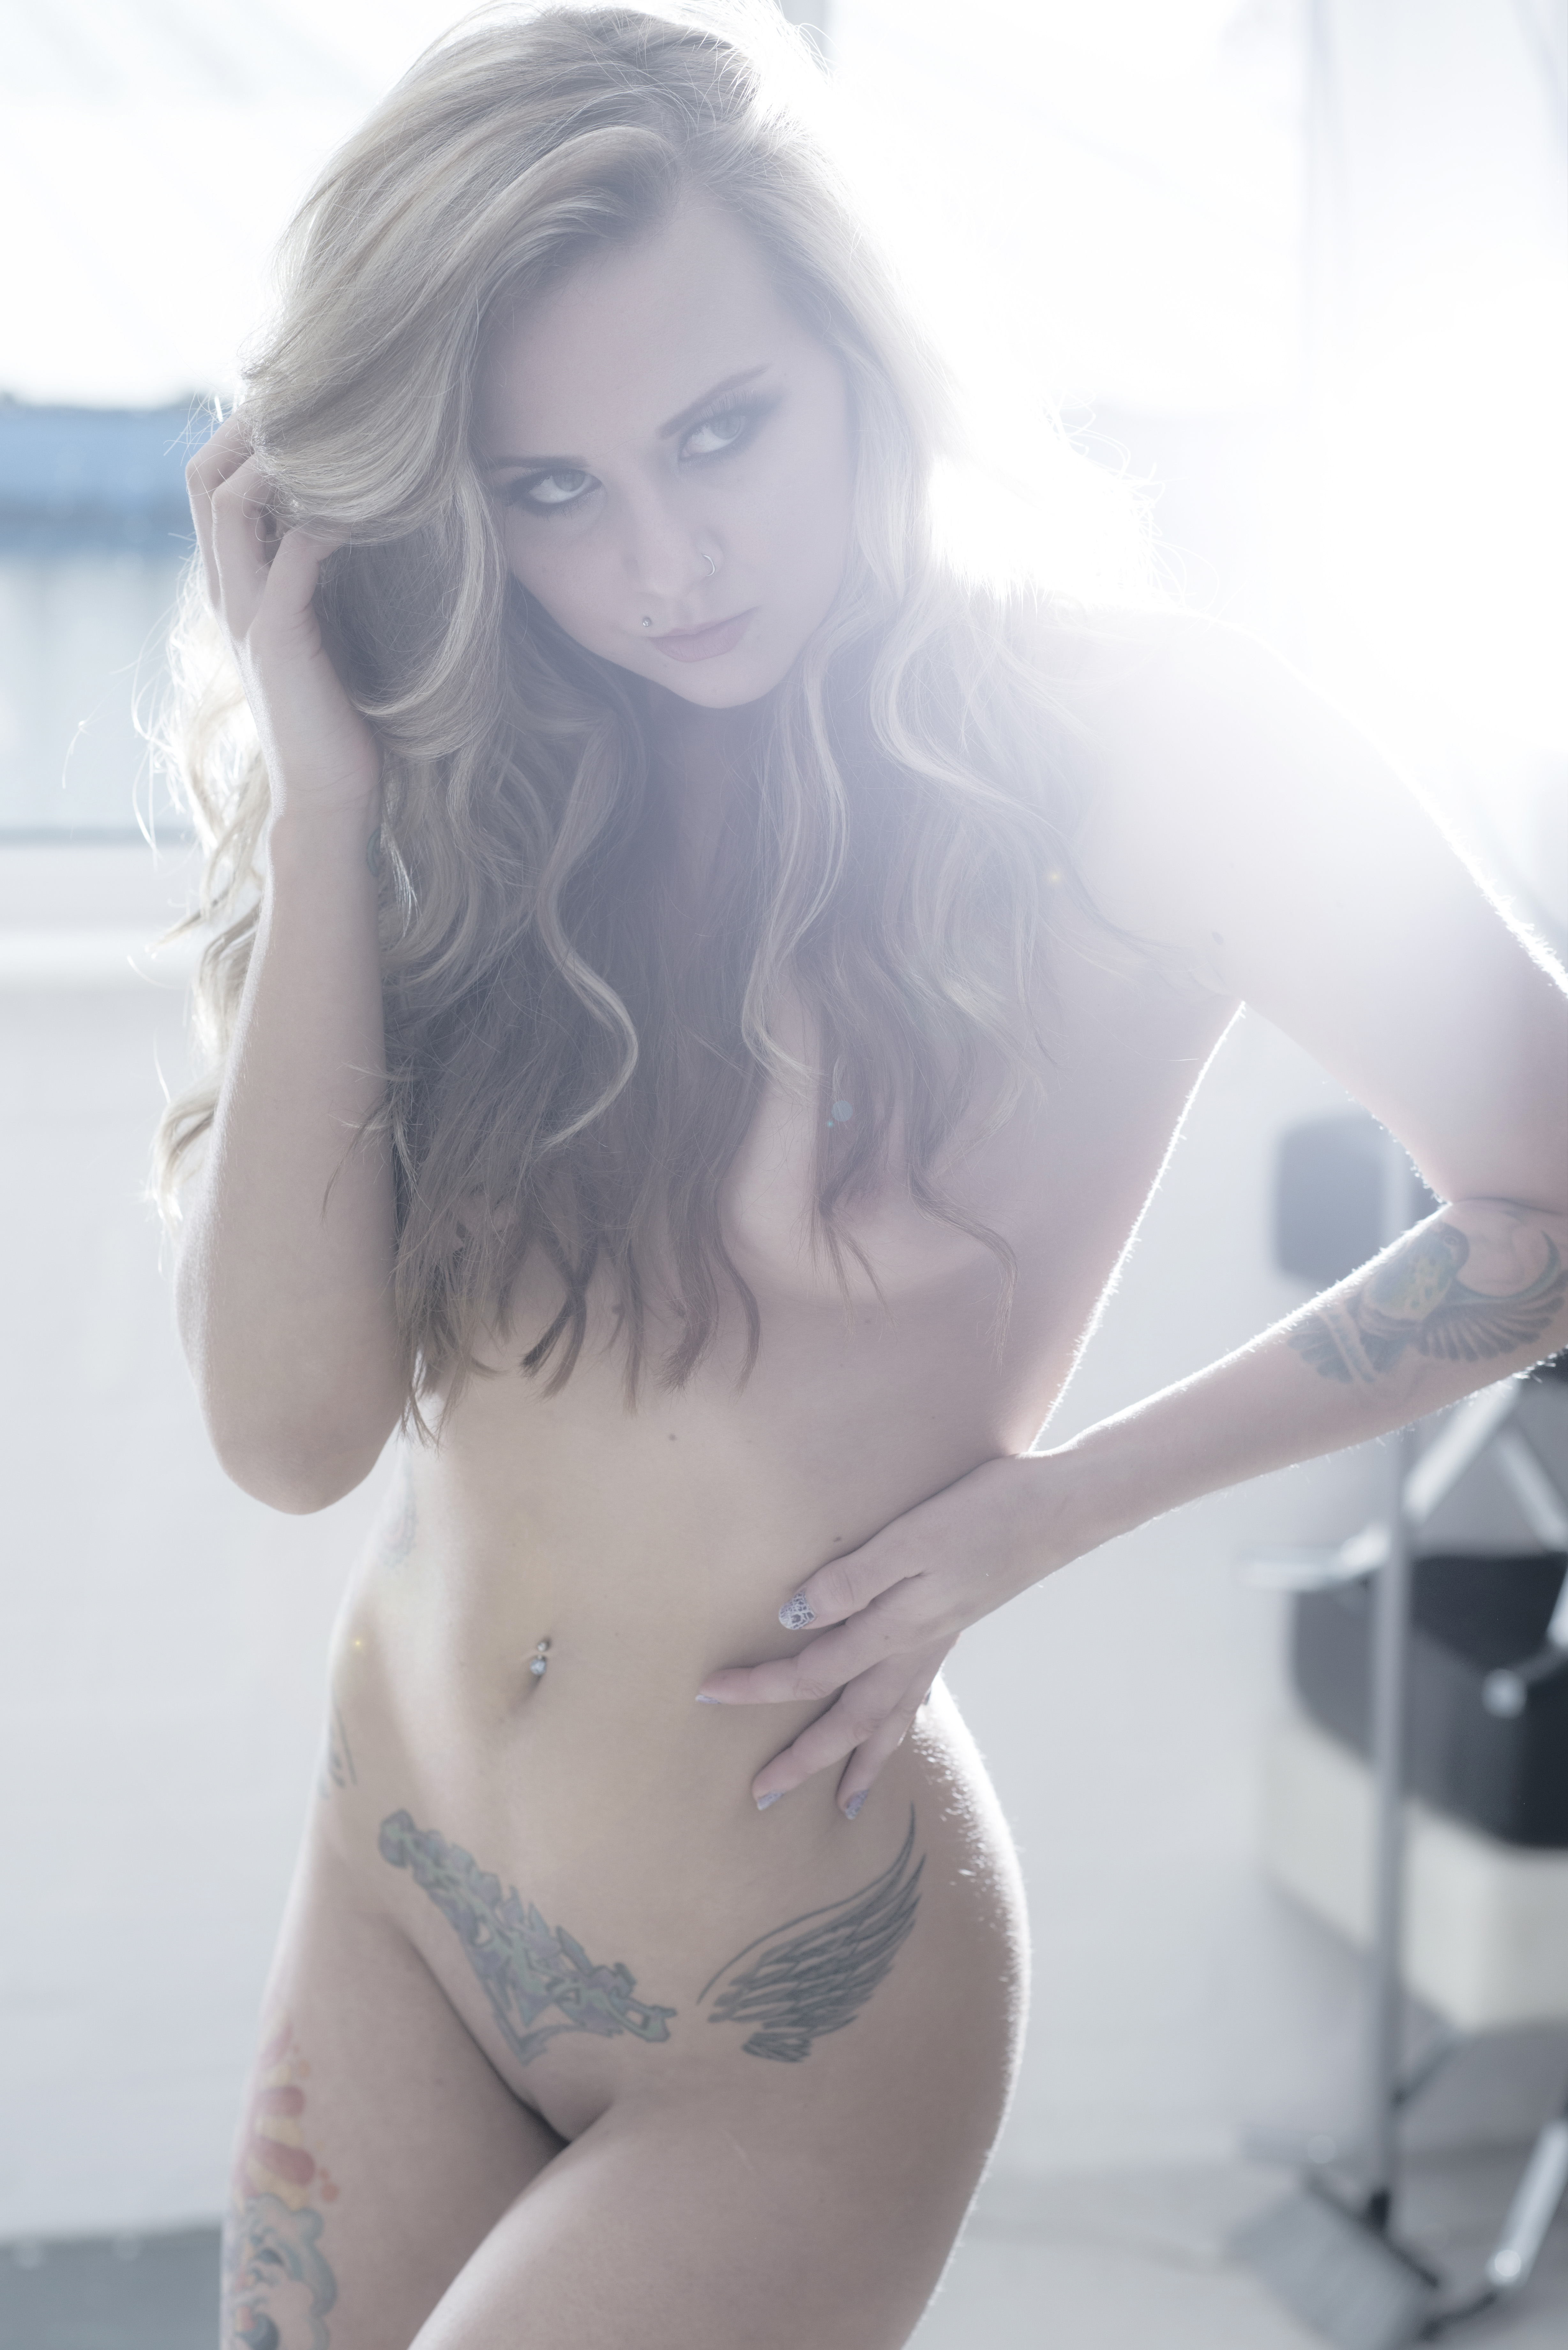 Sian softcore nudes